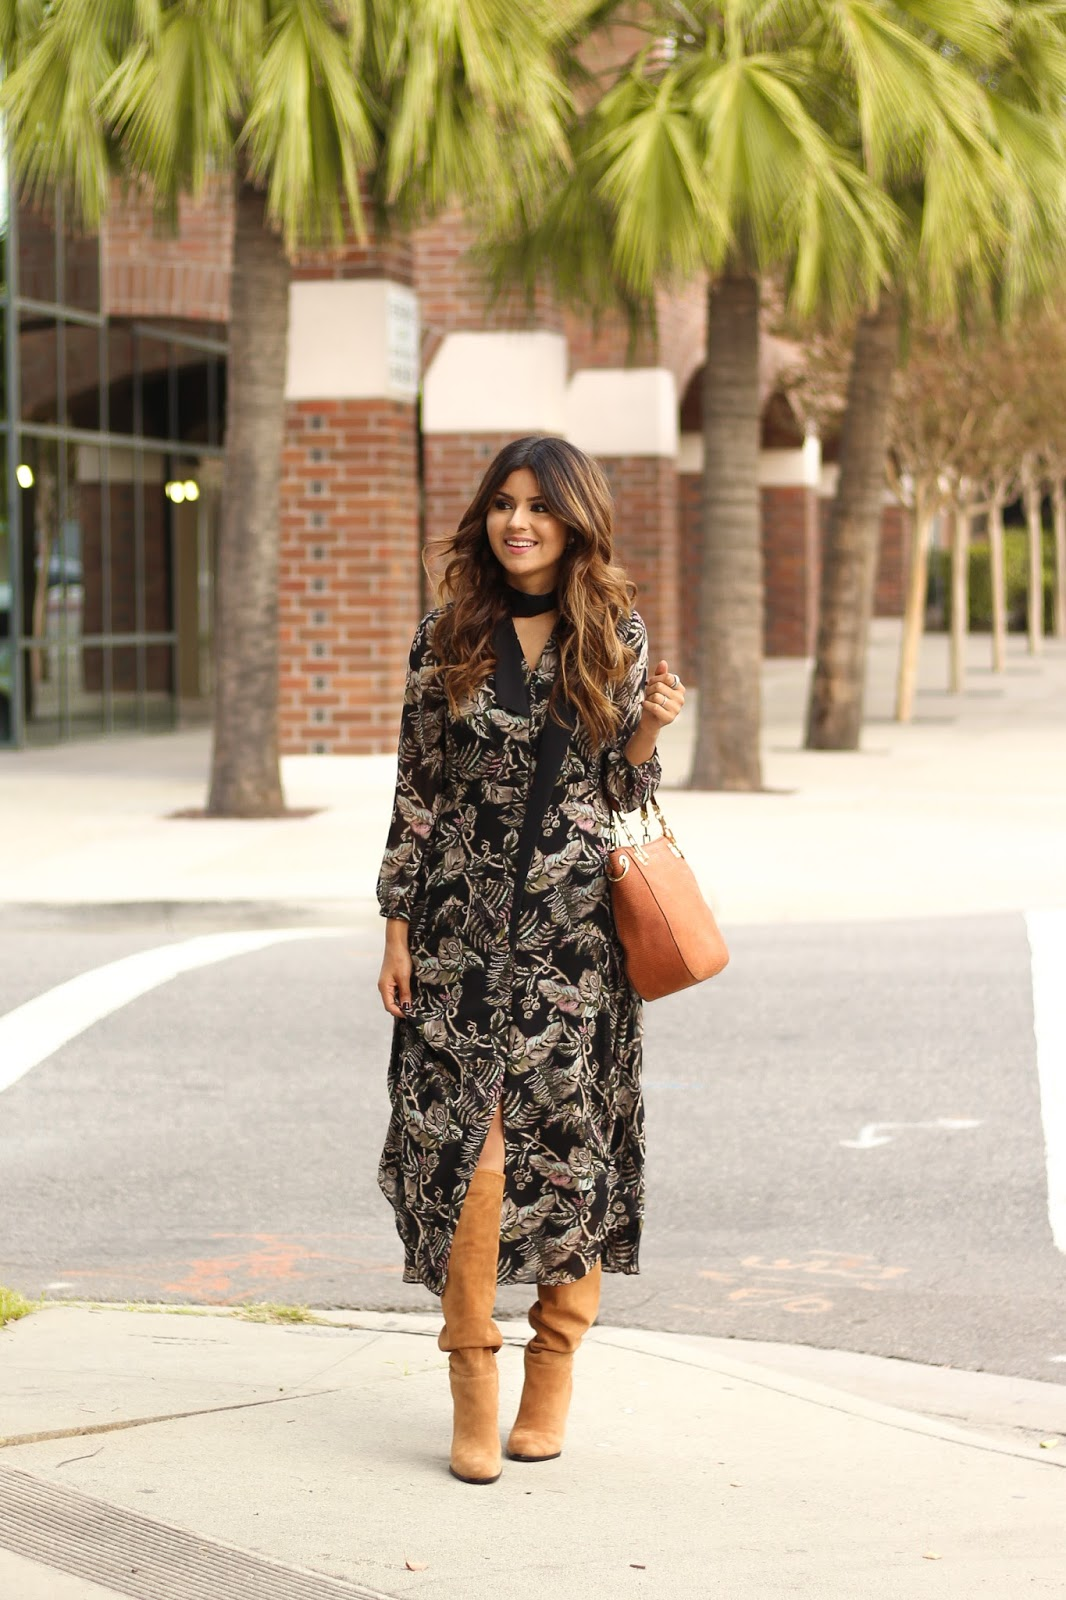 How to style a maxi Dress with tan boots